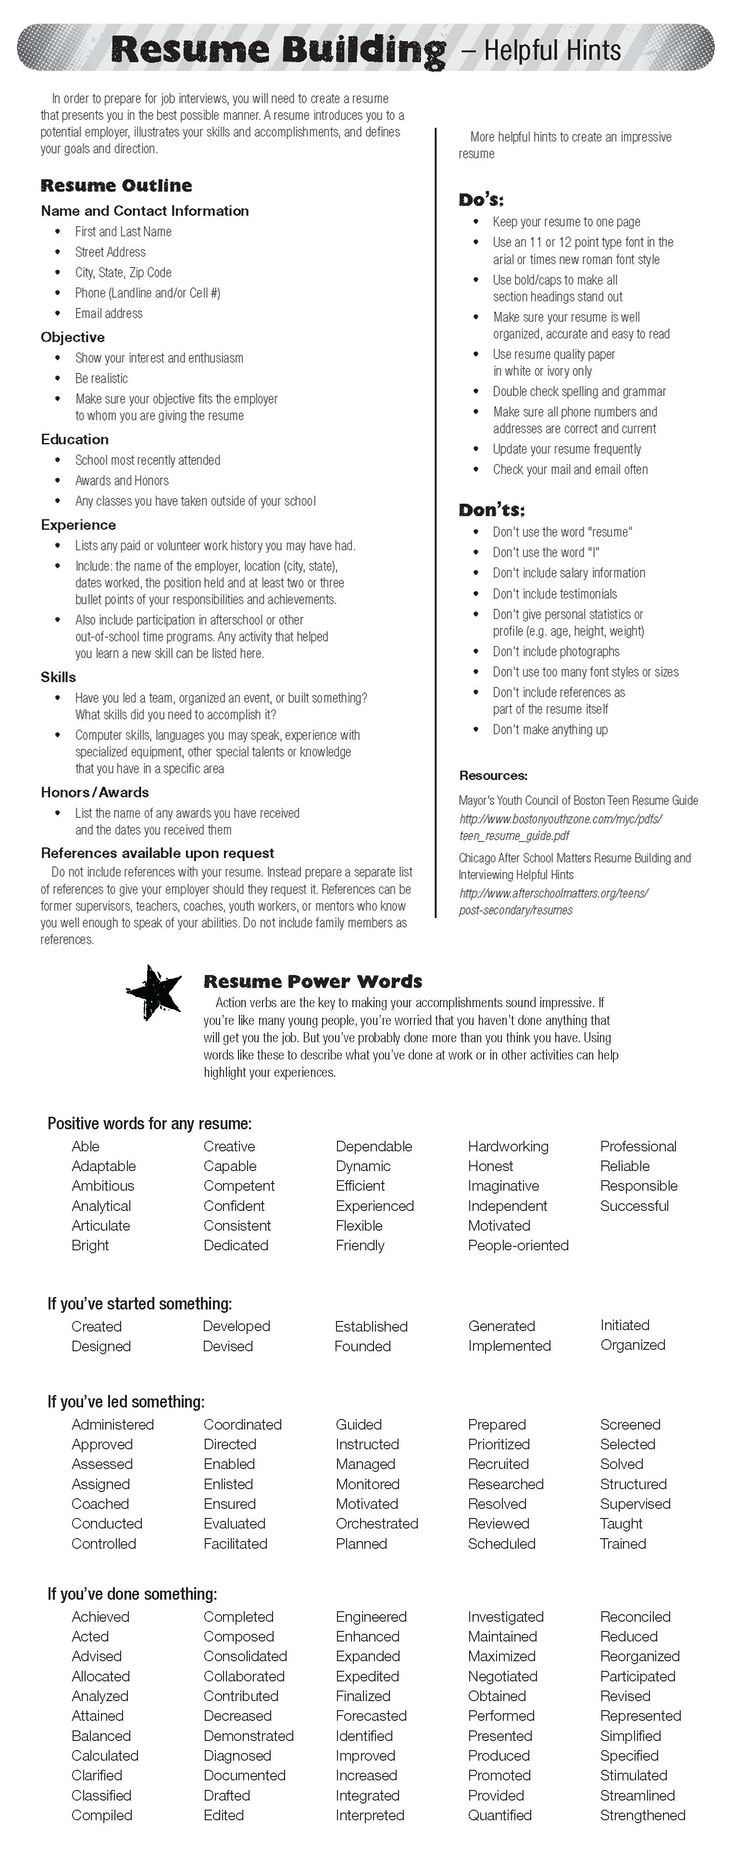 Picnictoimpeachus  Nice  Ideas About Resume On Pinterest  Cv Format Resume  With Interesting Check Out Todays Resume Building Tips Resume Resumepowerwords With Extraordinary Reason For Leaving On Resume Also Medical Assistant Duties For Resume In Addition How To Compose A Resume And Resume Name Examples As Well As Thank You For Reviewing My Resume Additionally Babysitter Resume Skills From Pinterestcom With Picnictoimpeachus  Interesting  Ideas About Resume On Pinterest  Cv Format Resume  With Extraordinary Check Out Todays Resume Building Tips Resume Resumepowerwords And Nice Reason For Leaving On Resume Also Medical Assistant Duties For Resume In Addition How To Compose A Resume From Pinterestcom